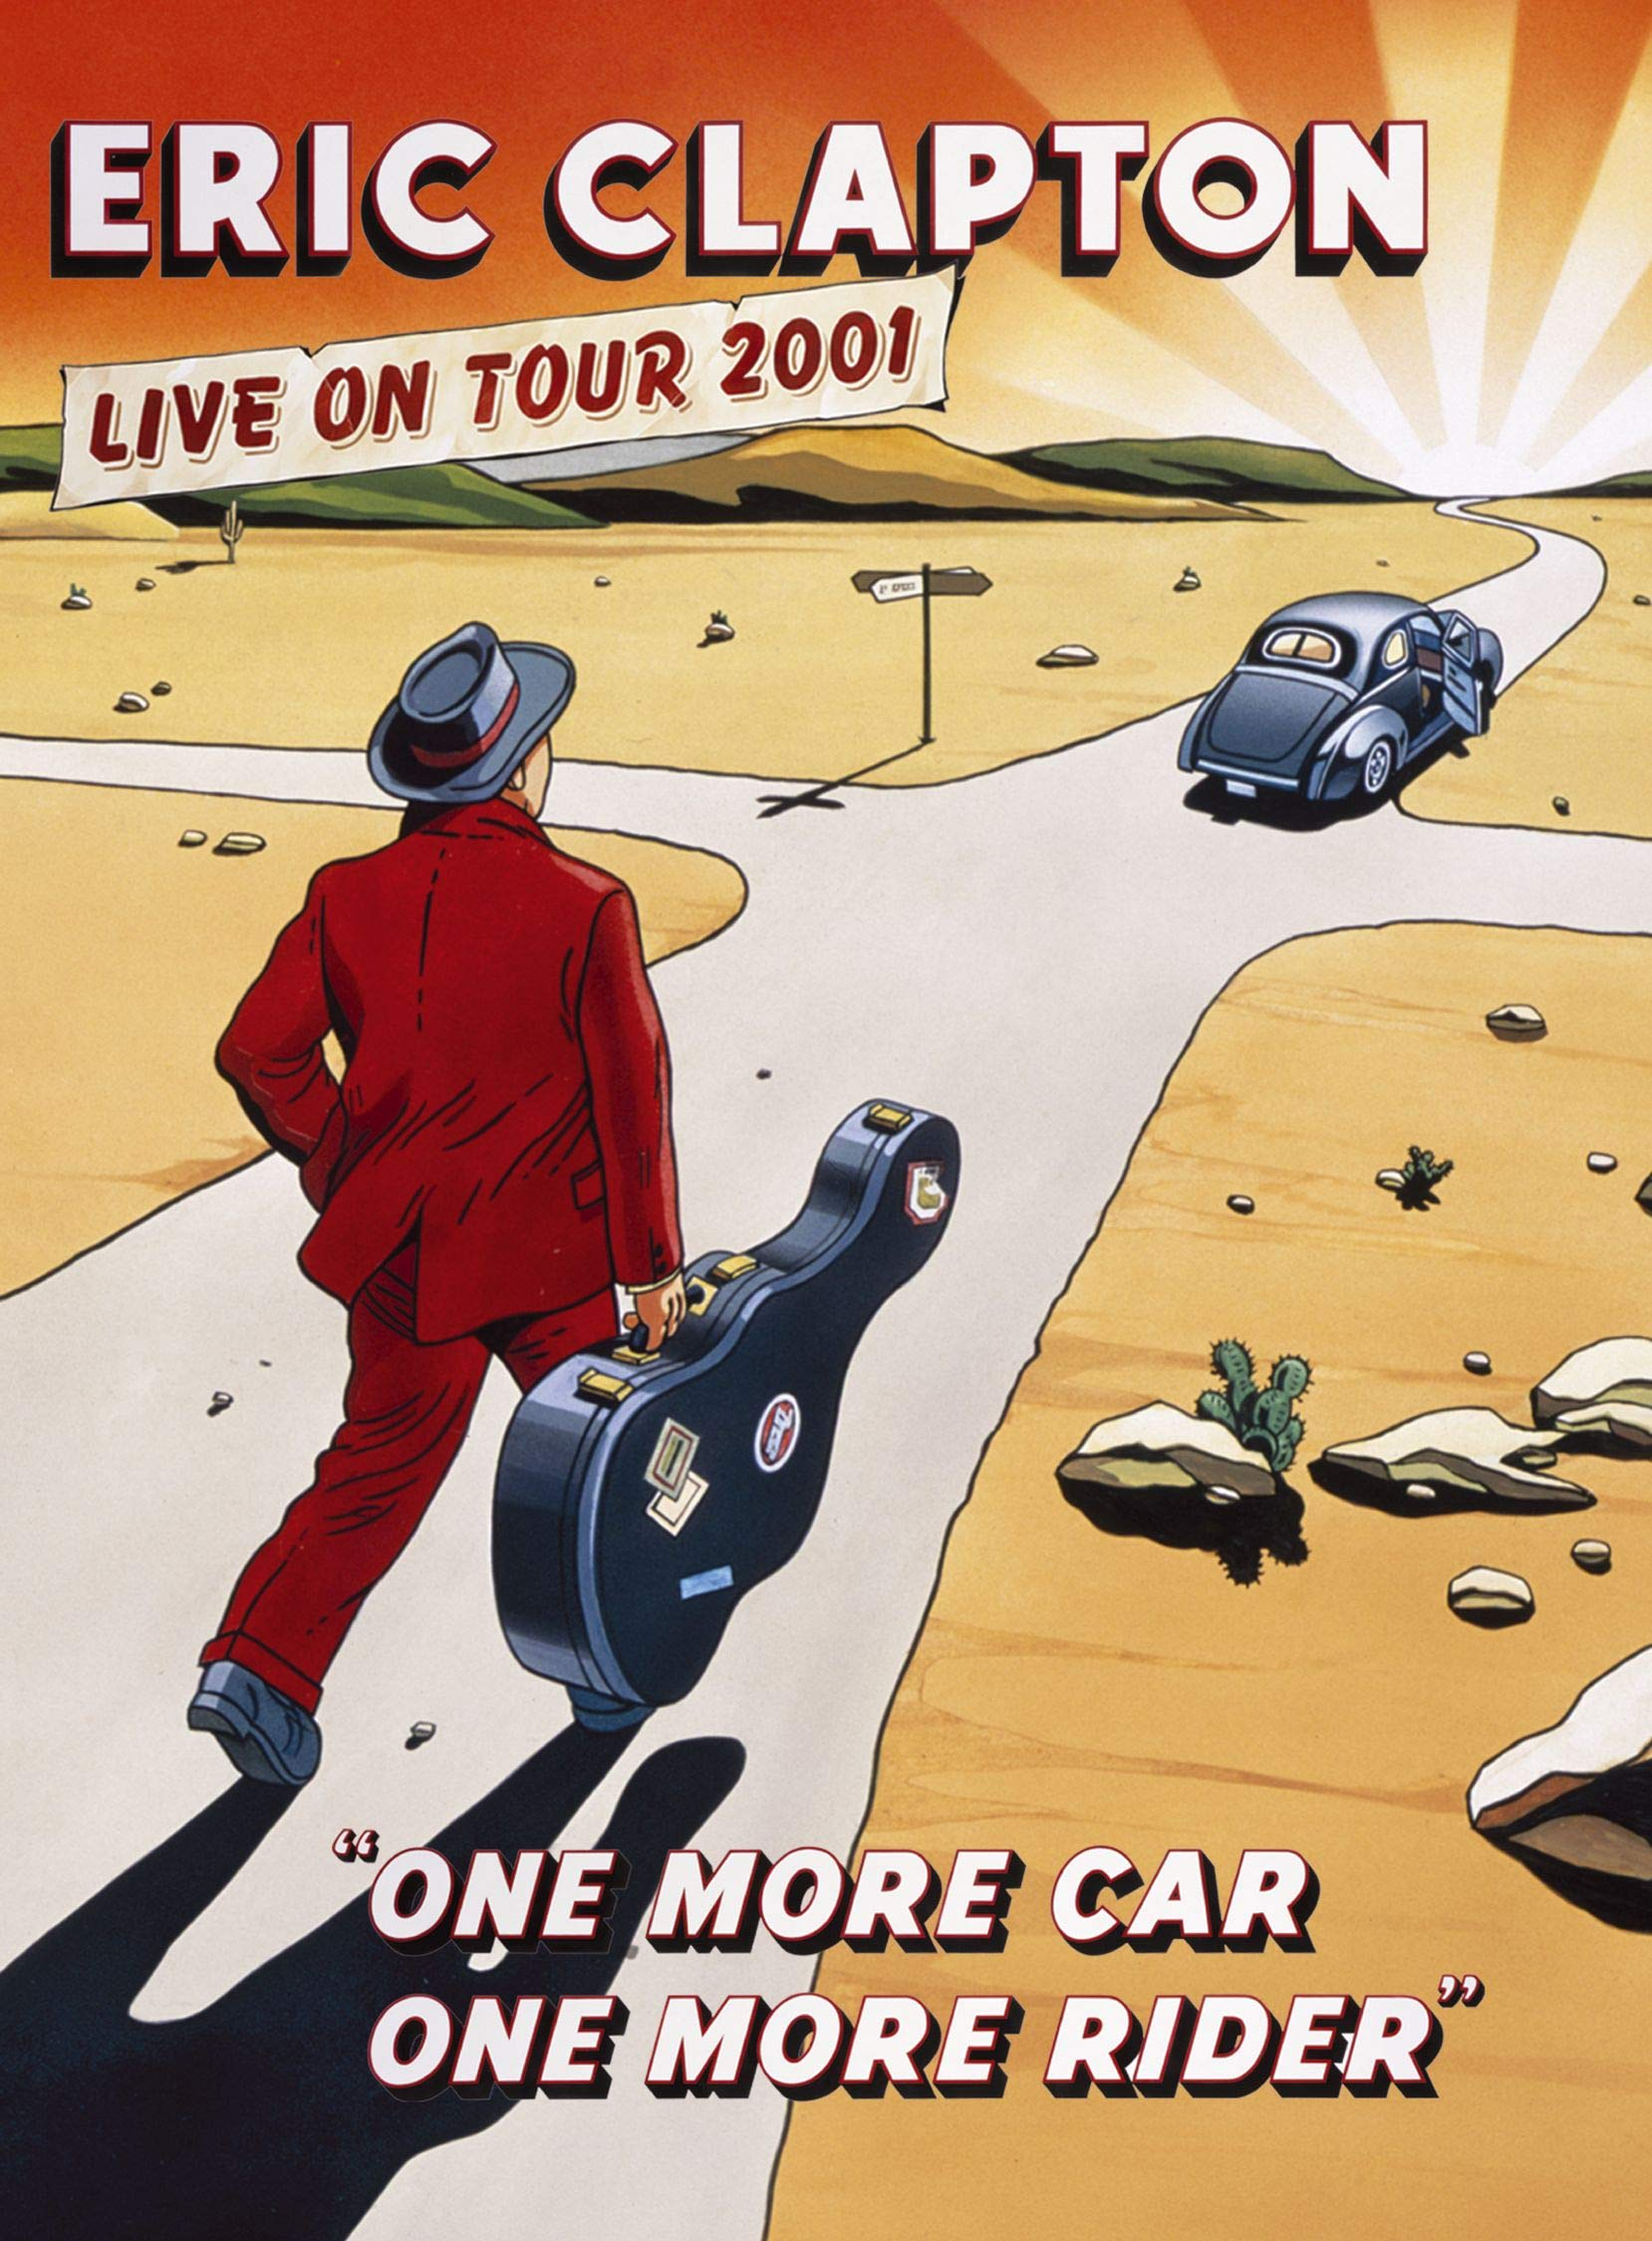 Eric Clapton - One More Car One More Rider by WEA DES Moines Video